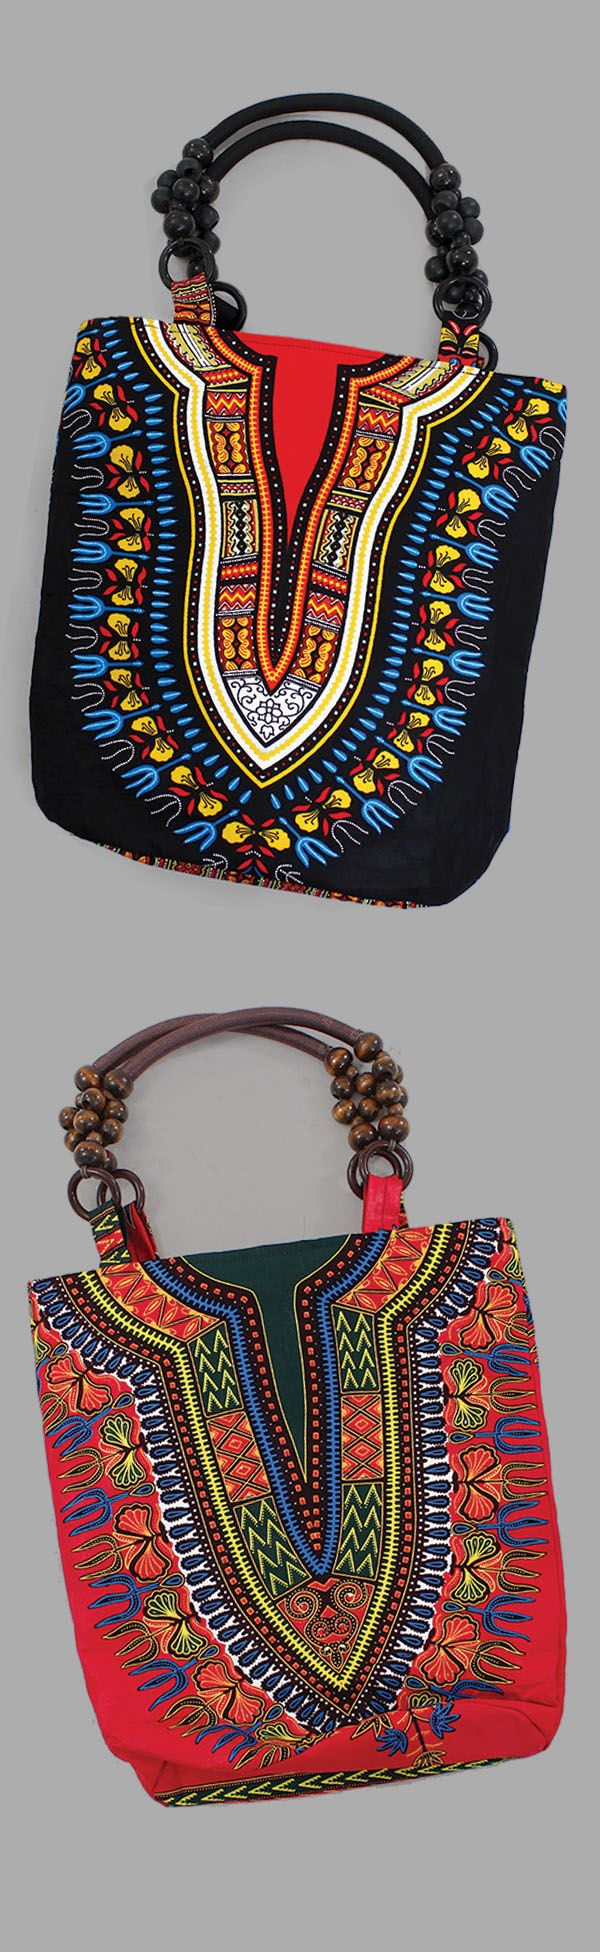 Traditional African Print Beaded Tote Bag Purse - Be bold and vibrant with this traditional African print handbag. This tote features a large wooden beaded handle. Closes with a zipper. Completely hand-crafted in Ghana.  Celebrate African culture and history with this beautiful African traditional style purse.  #purse #handbag #style #african #africa #fashion #womensfashion #africanfashion